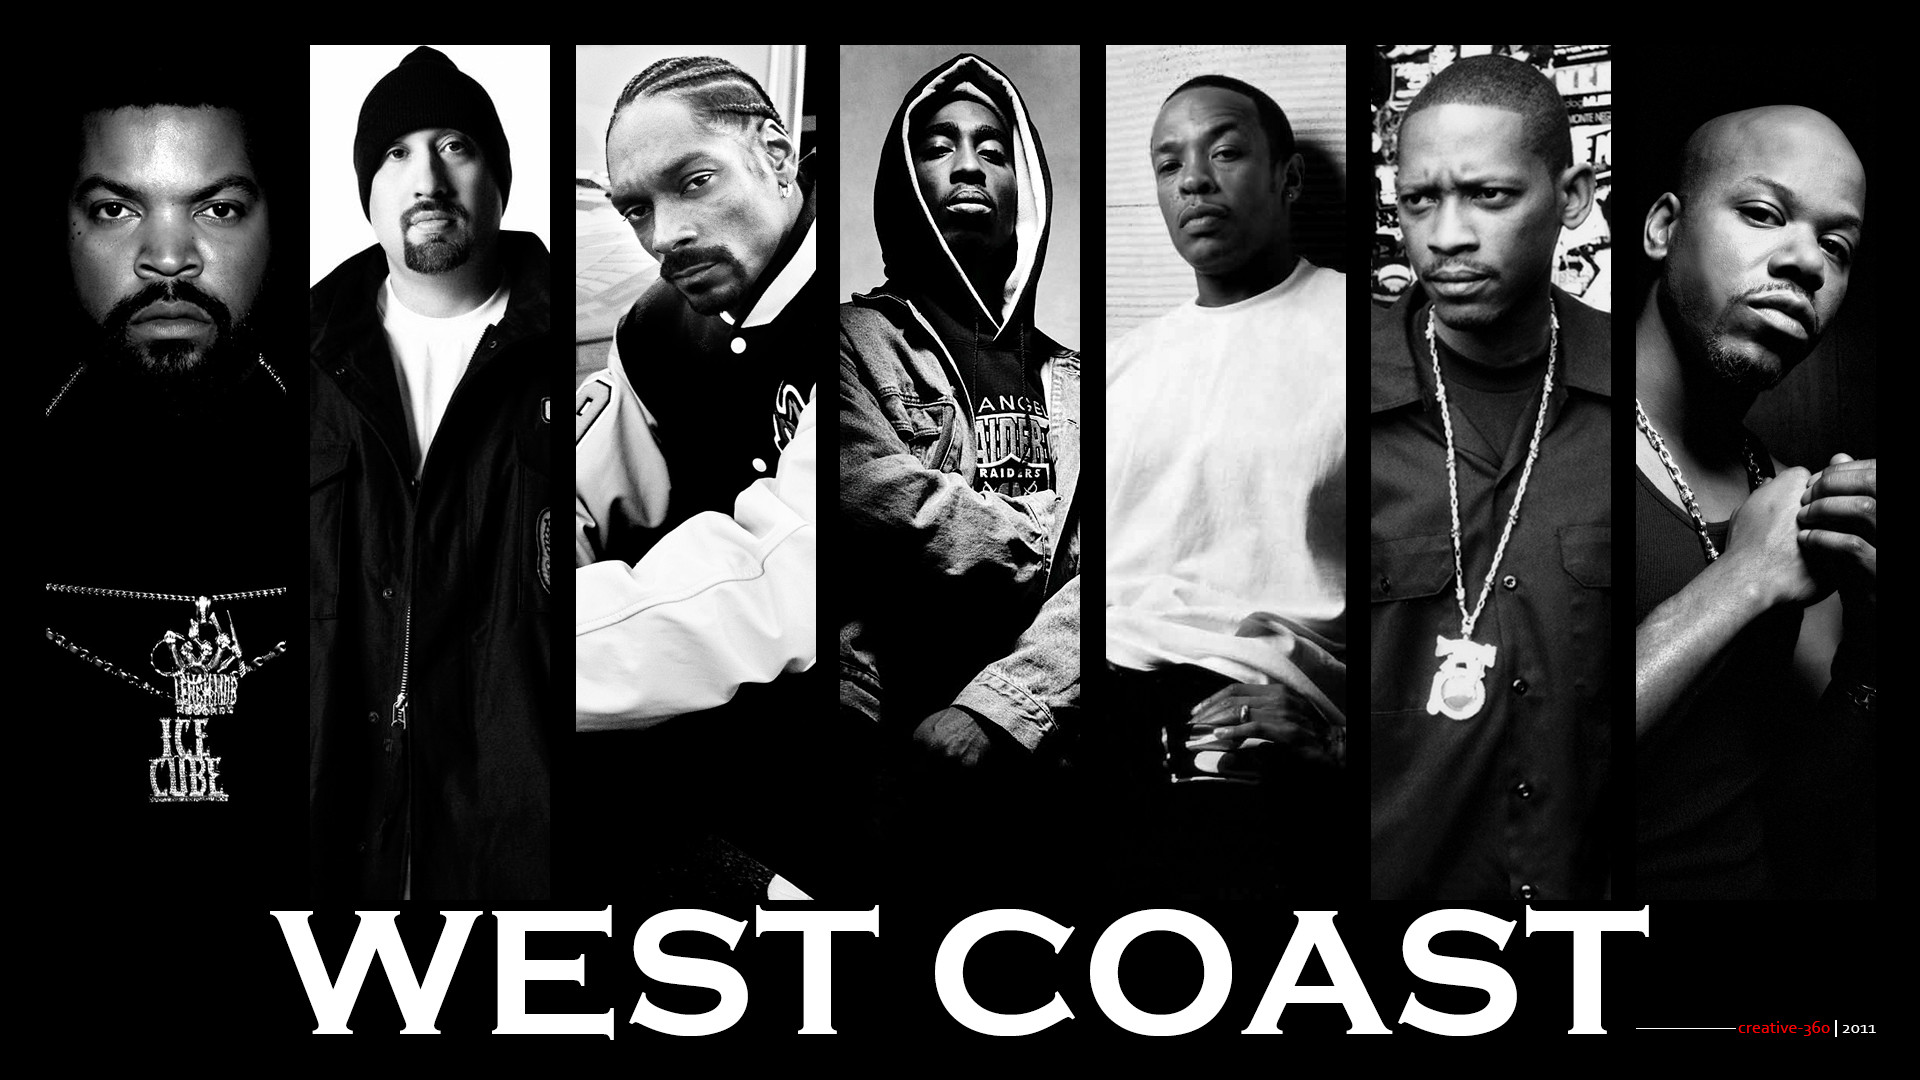 WEST COAST by creative-360 on DeviantArt